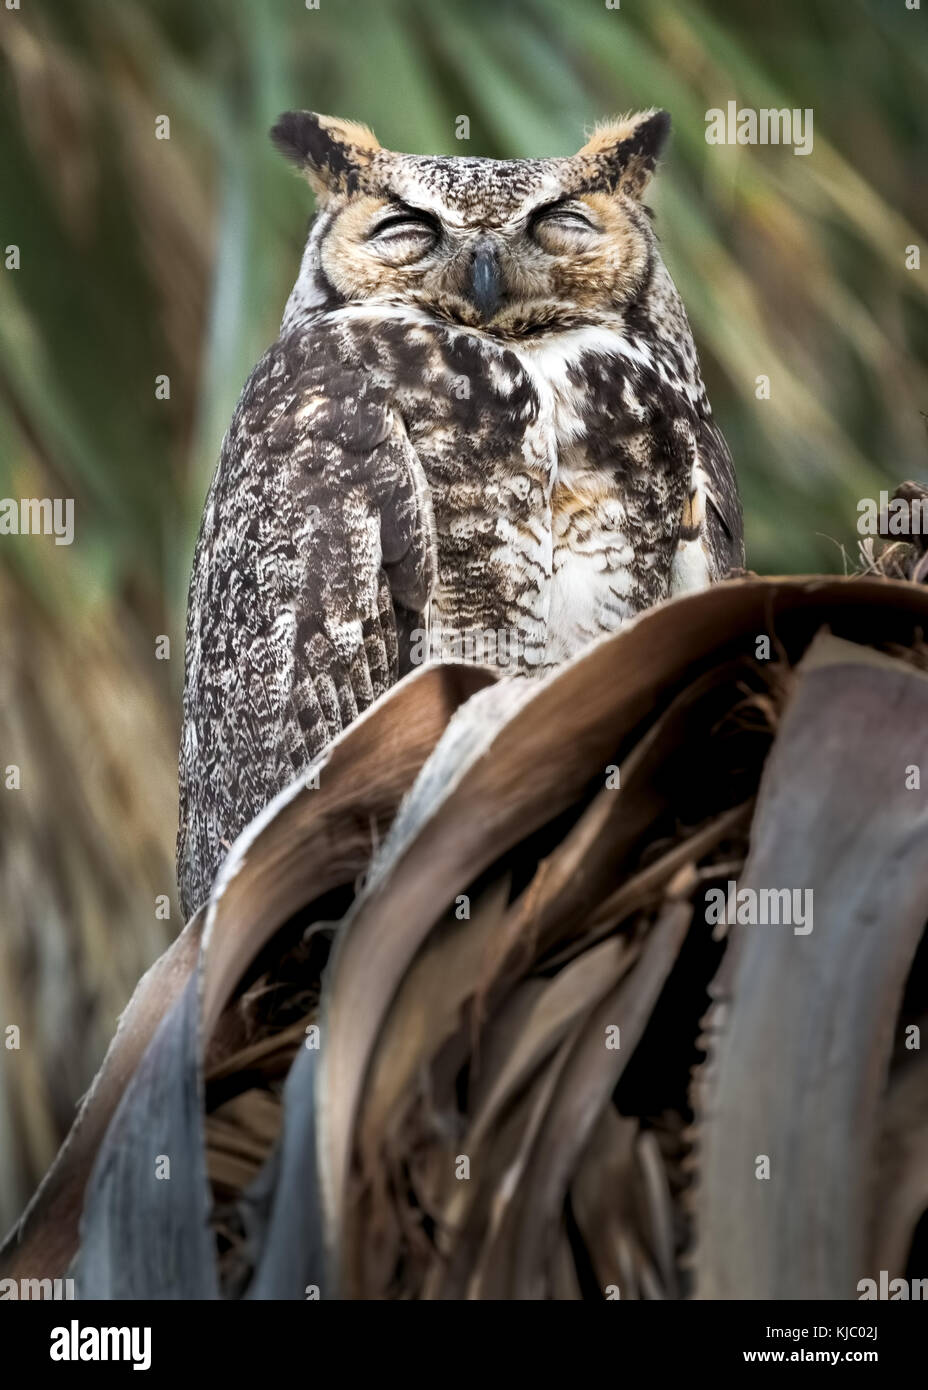 Great Horned Owl in palm tree, Coachella Valley Preserve, Riverside County, California Stock Photo